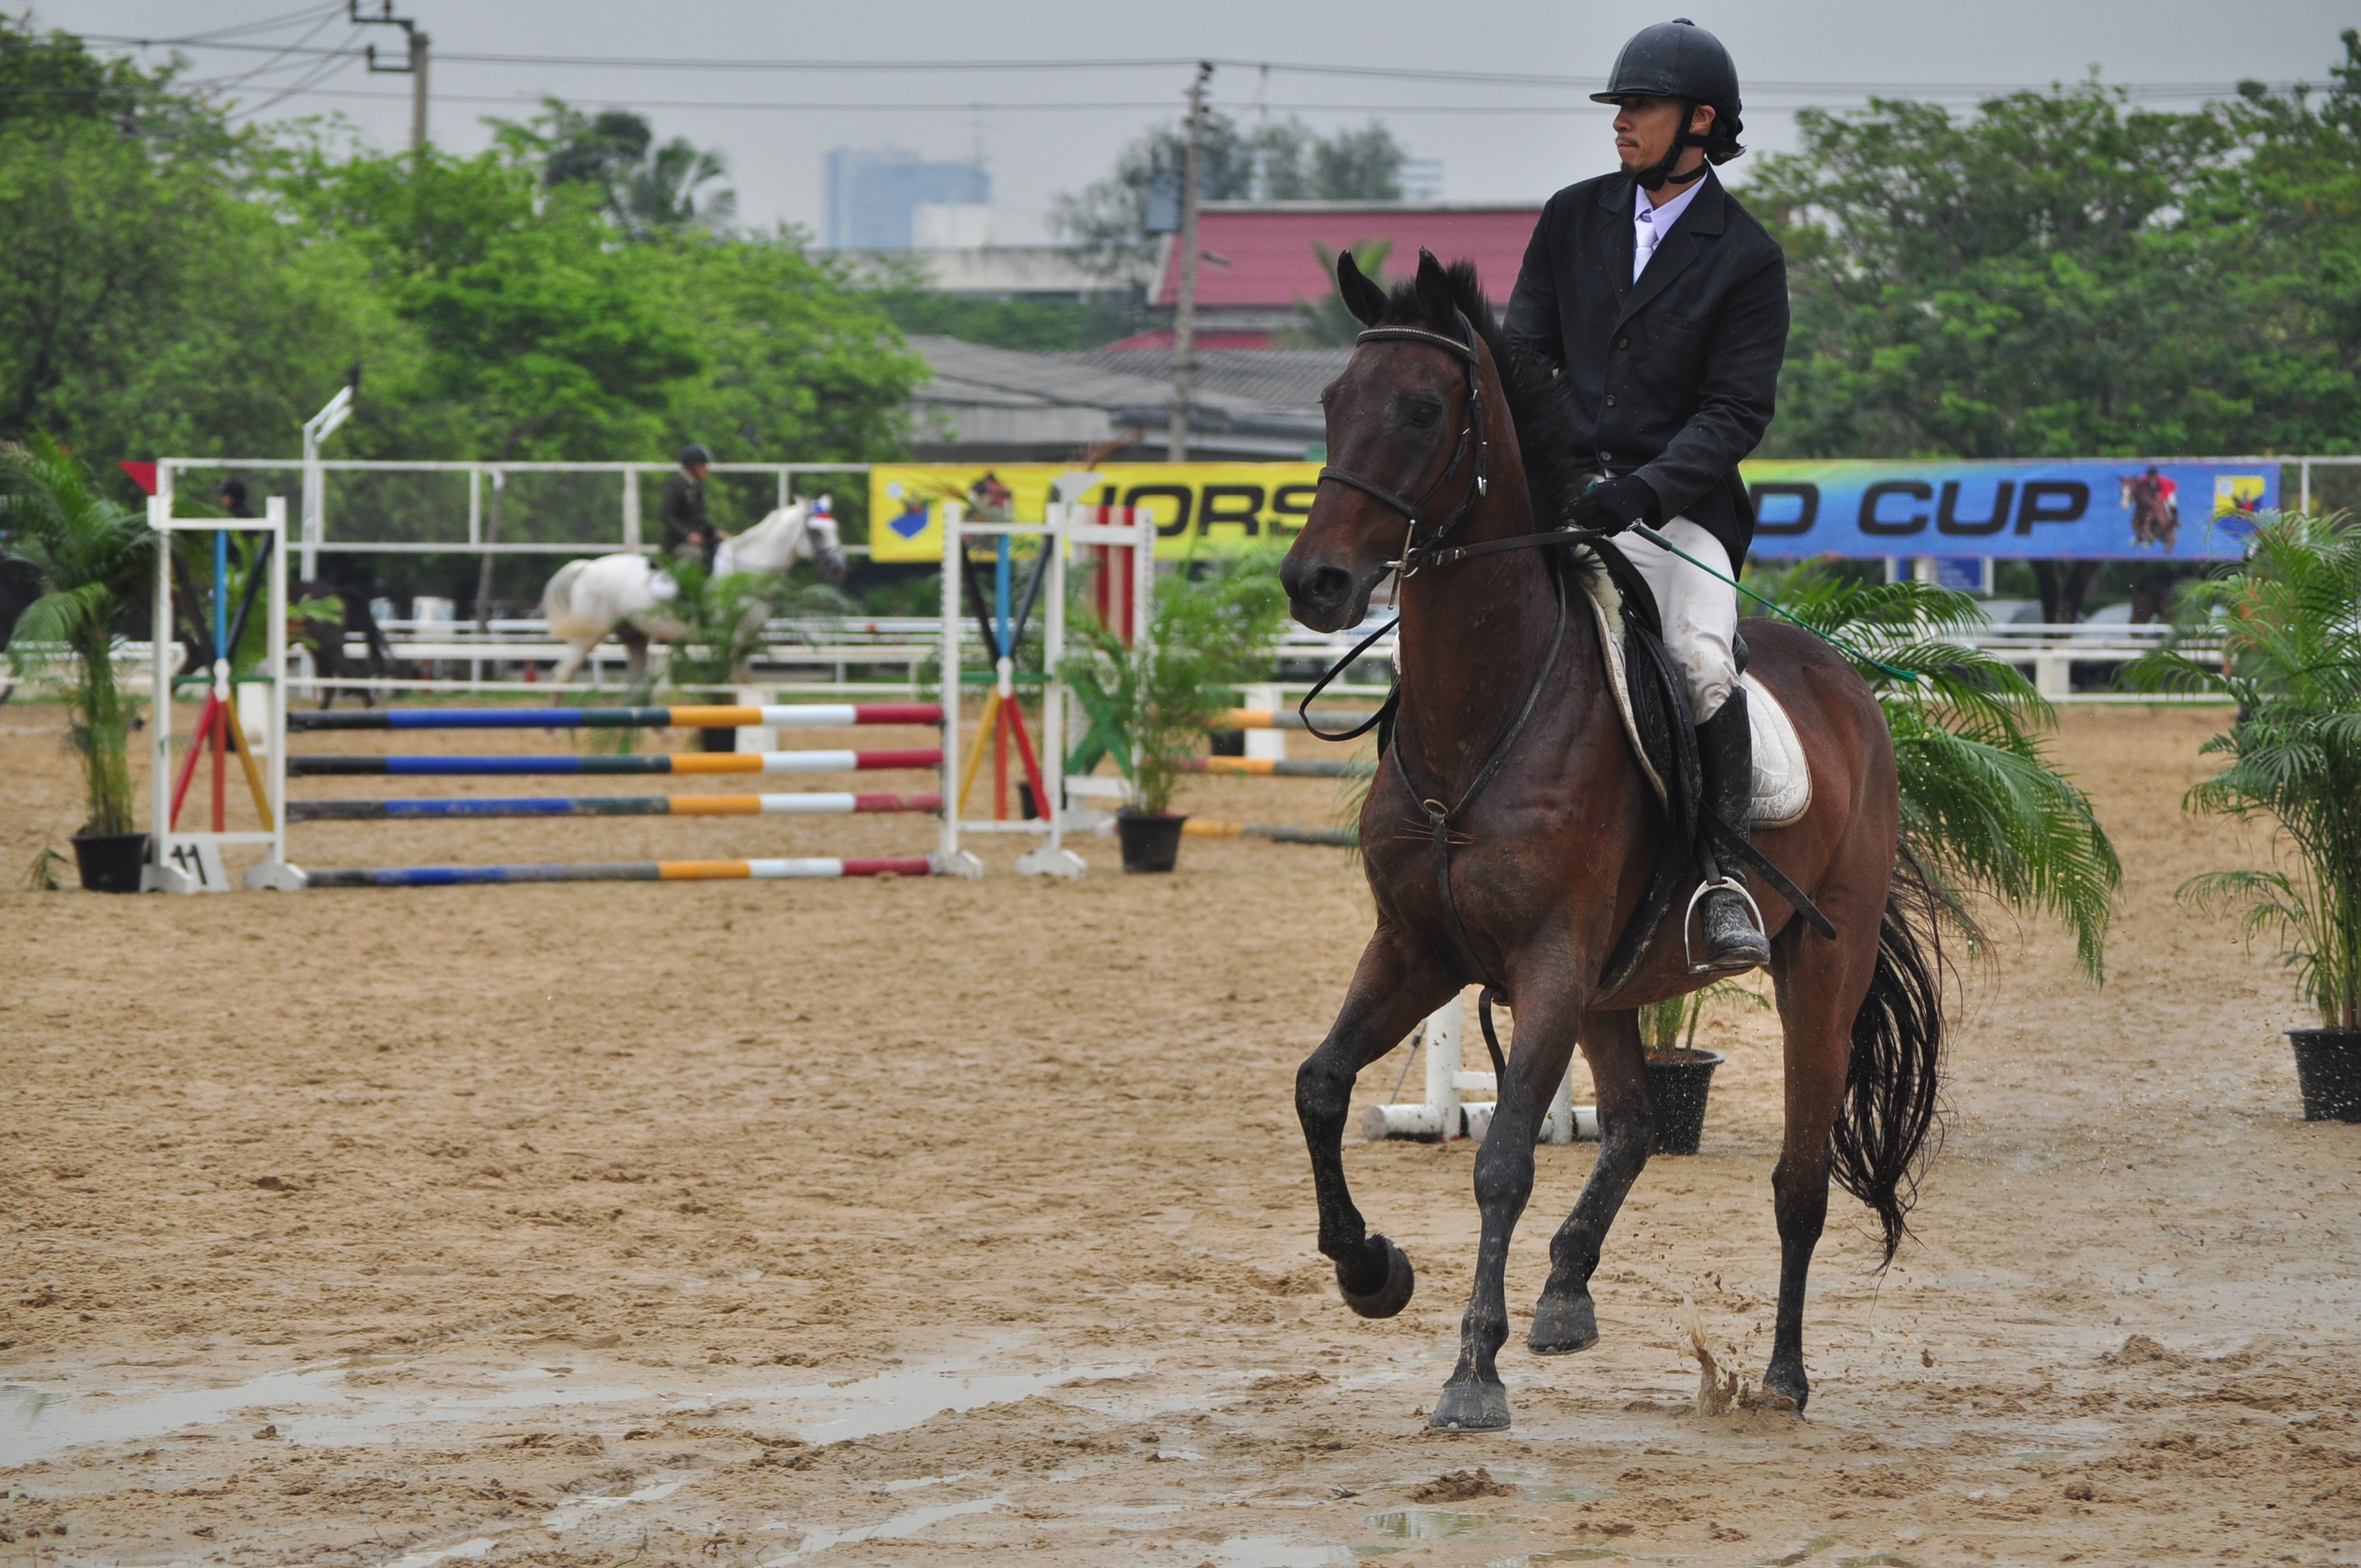 Horse Riding Show Jumping&Dressage